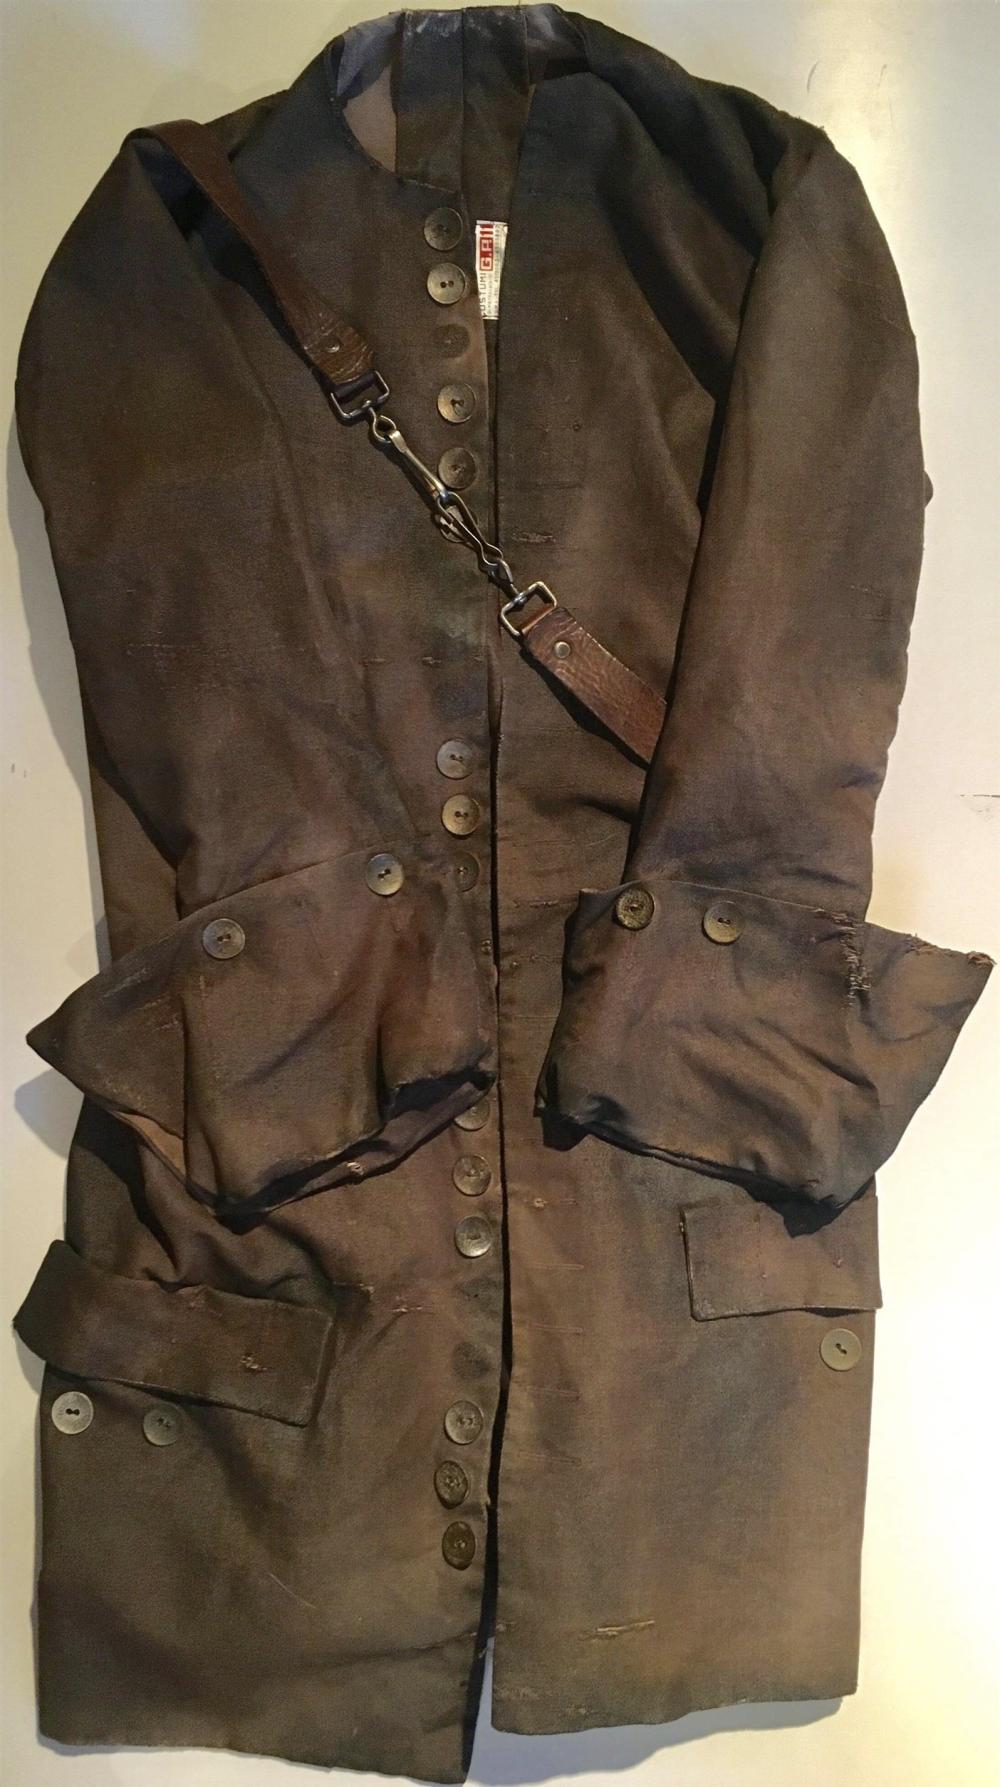 Lot 67: Pirates of the Caribbean: On Stranger Tides (2011) - Pirate Jacket With Sword Strap